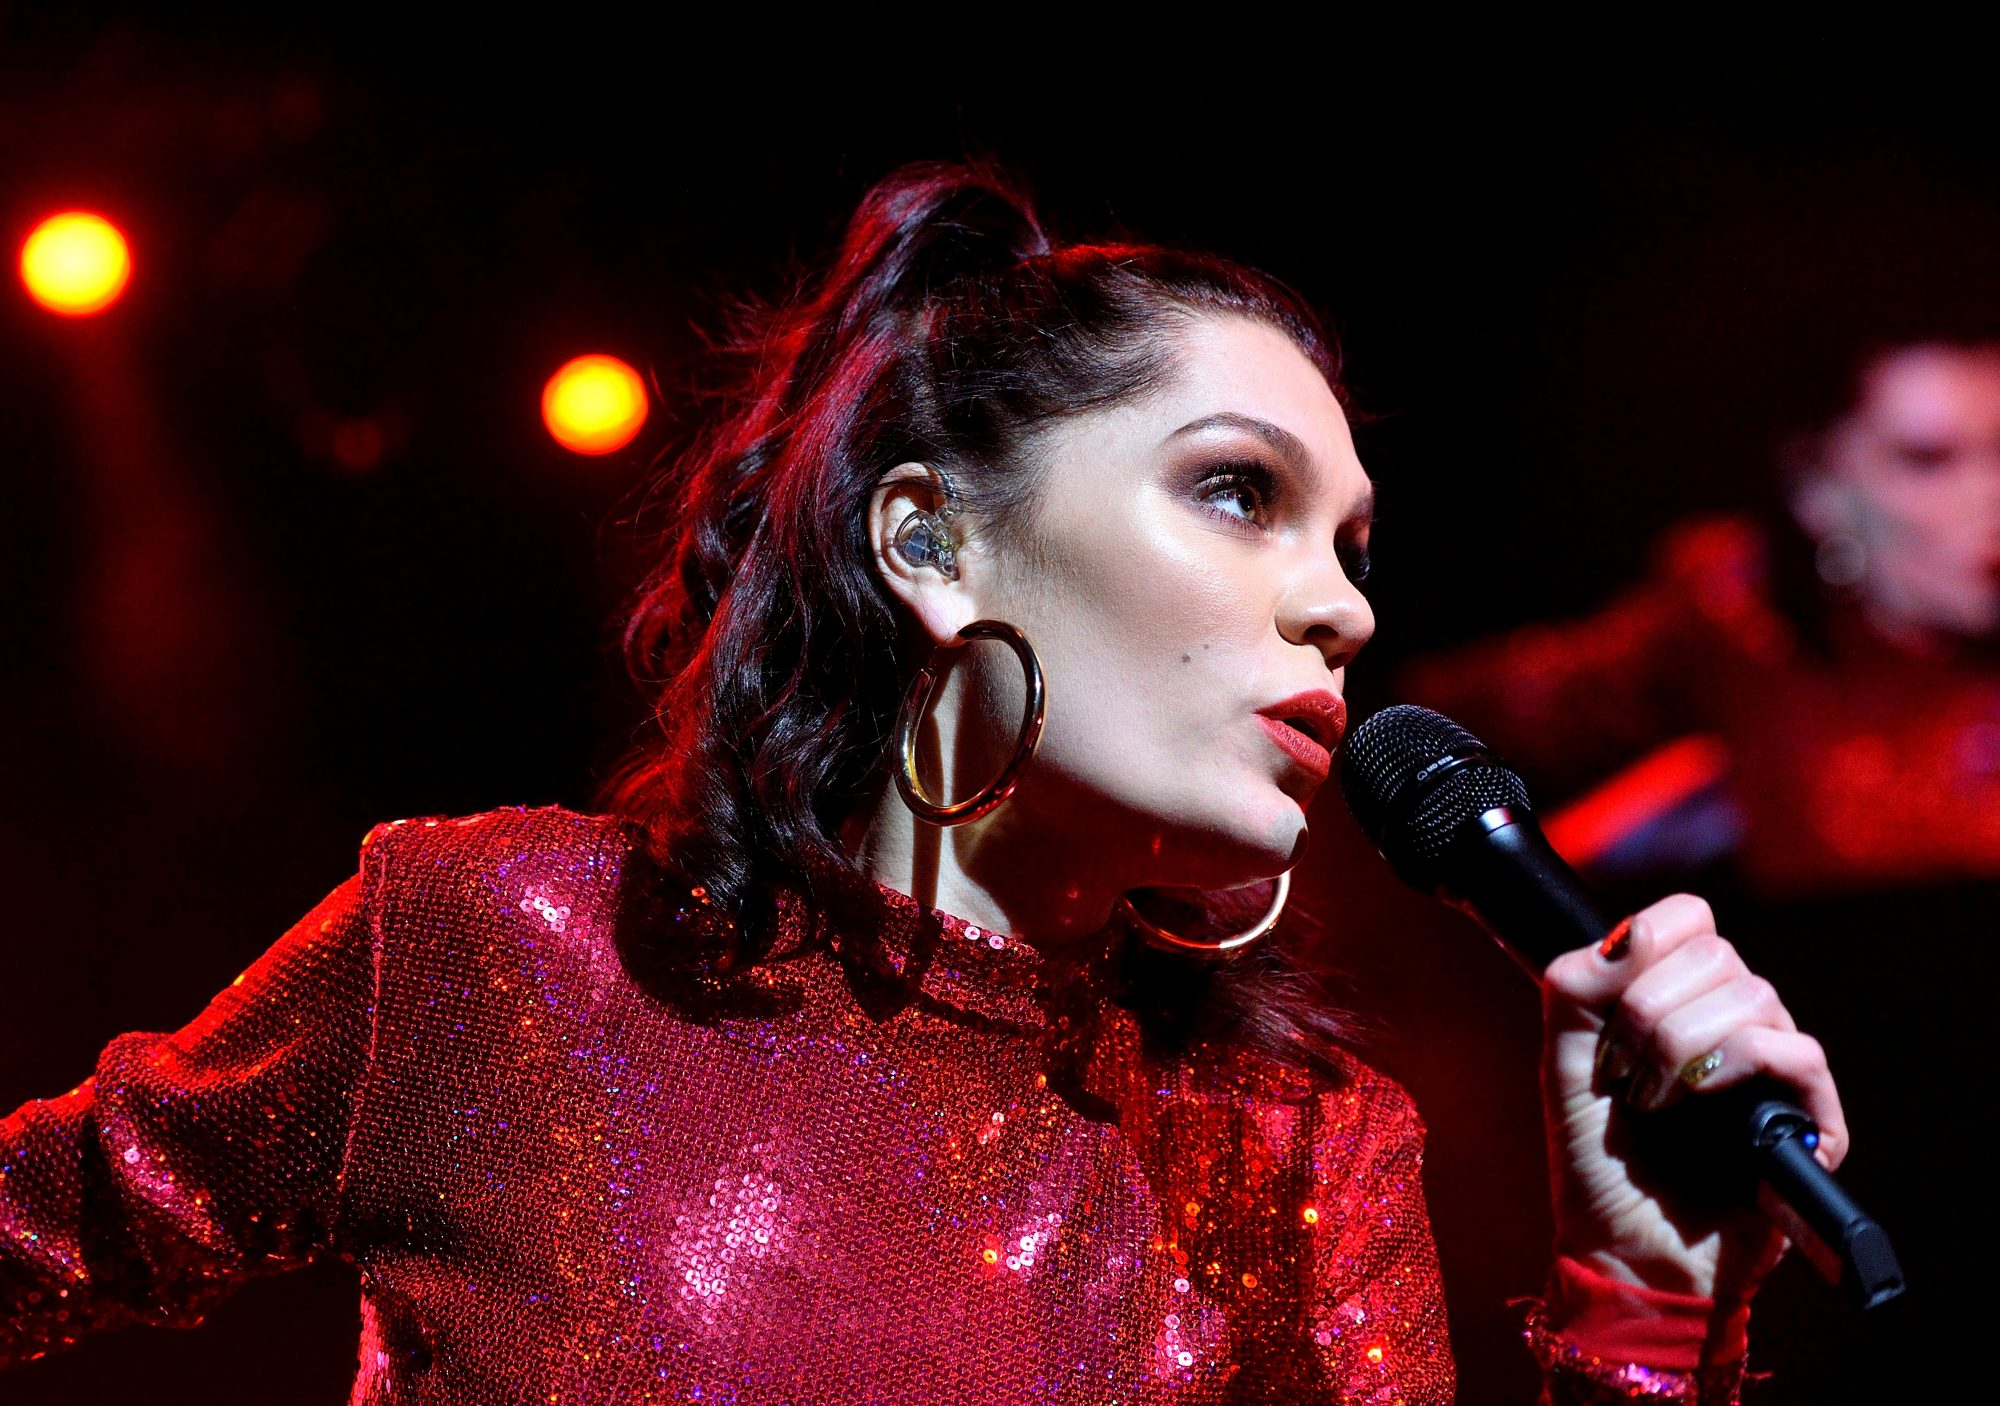 Jessie J Reveals During London Concert That Doctors Told Her She 'Can't Ever Have Children'